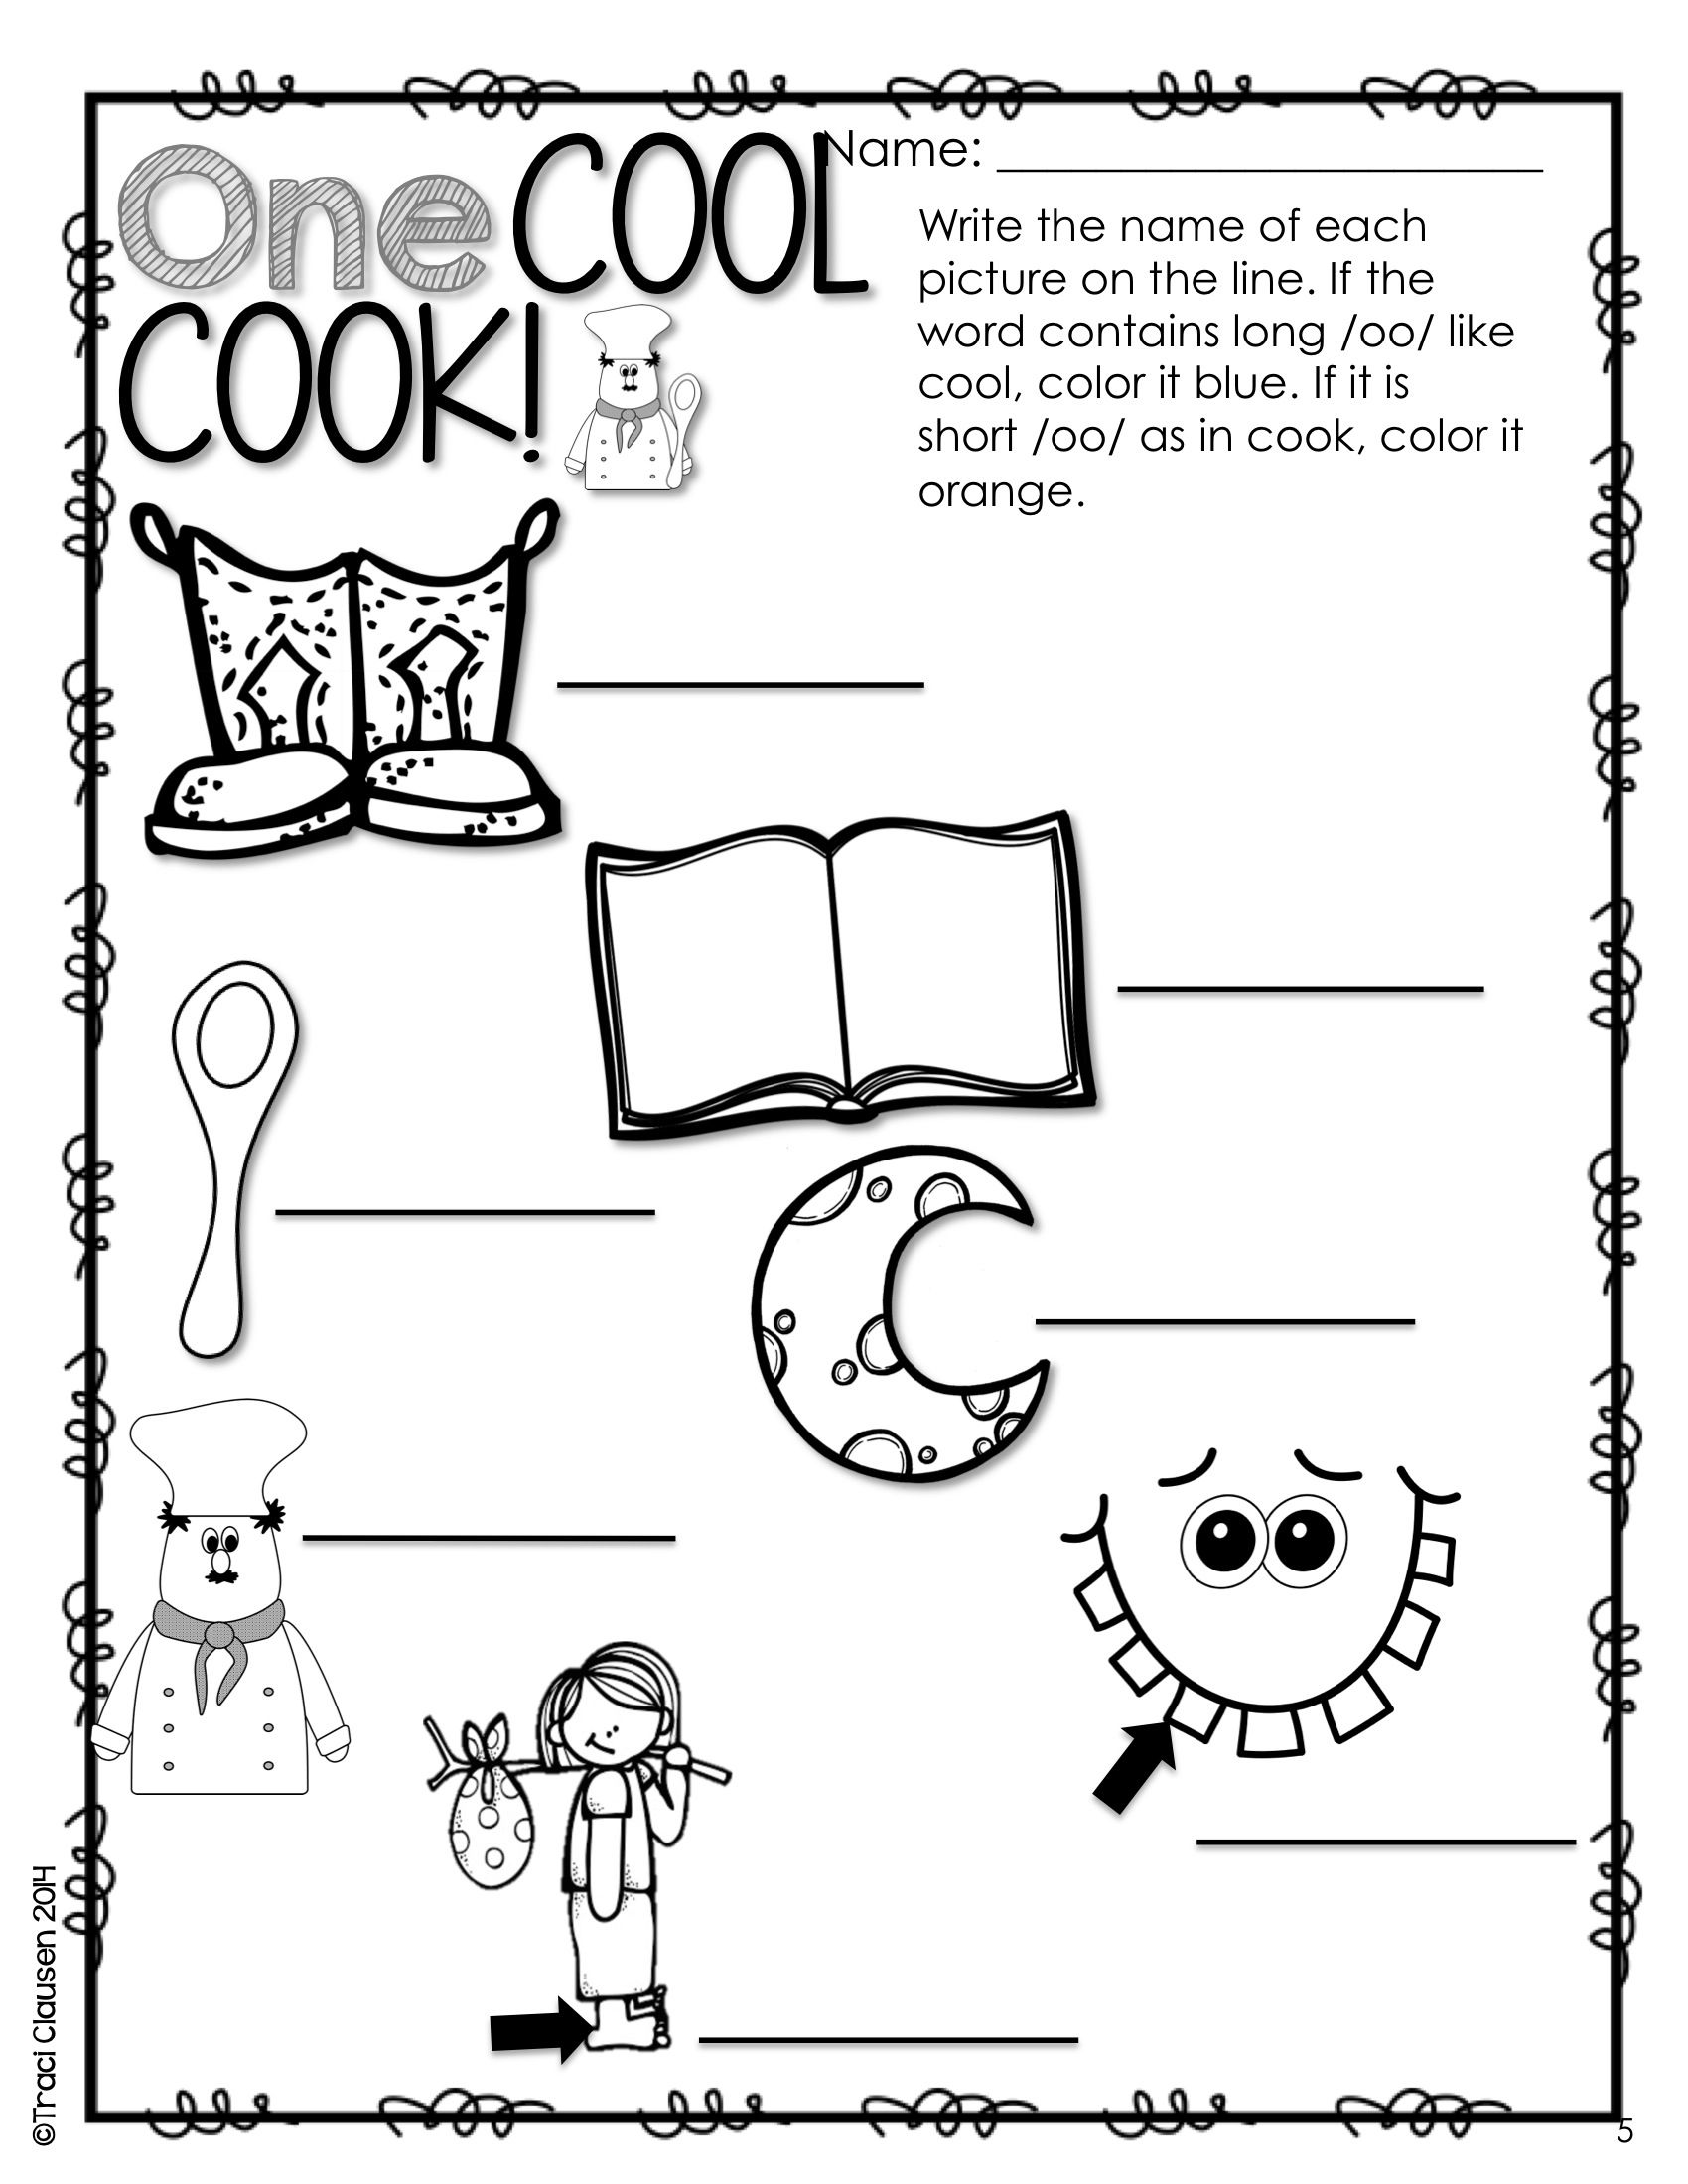 Reading Vowels Phonics Activities And Games Bossy R And The Diphthongs Phonics Worksheets Jolly Phonics Kindergarten Worksheets [ 2200 x 1700 Pixel ]